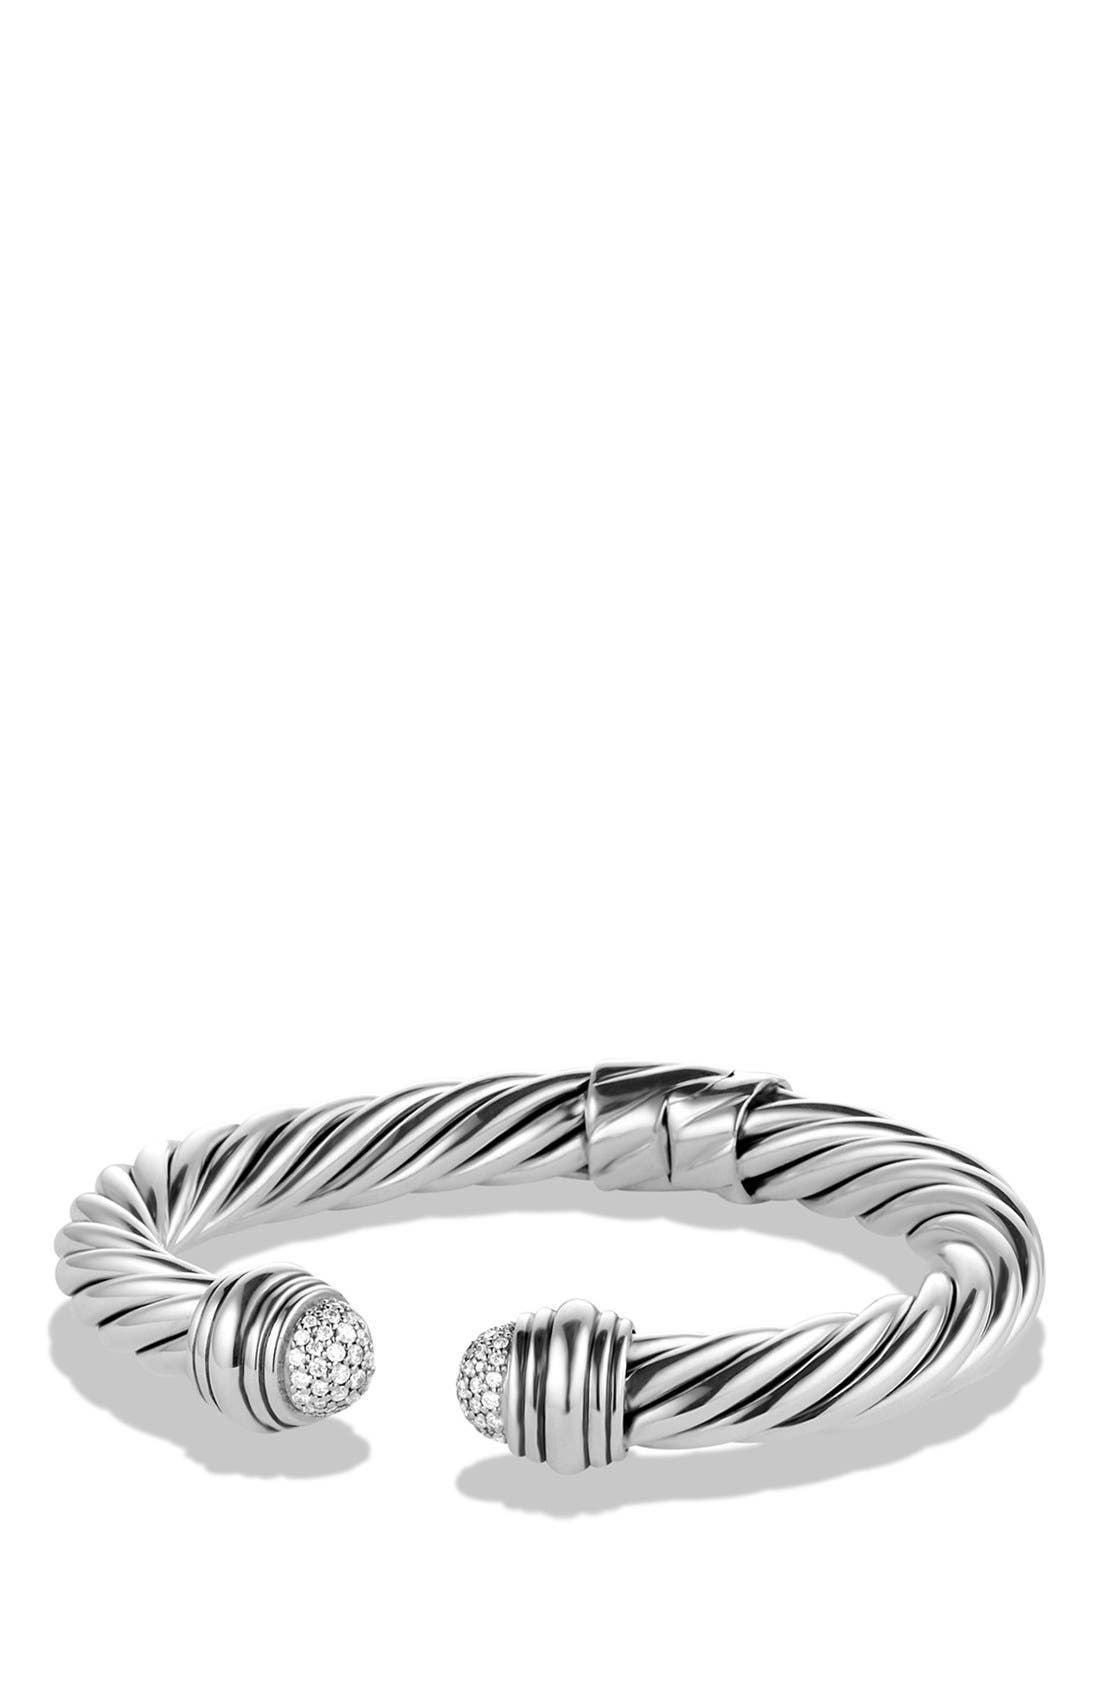 Cable Classics Pavé Tip Bracelet with Diamonds, 8.5mm,                         Main,                         color, Diamond